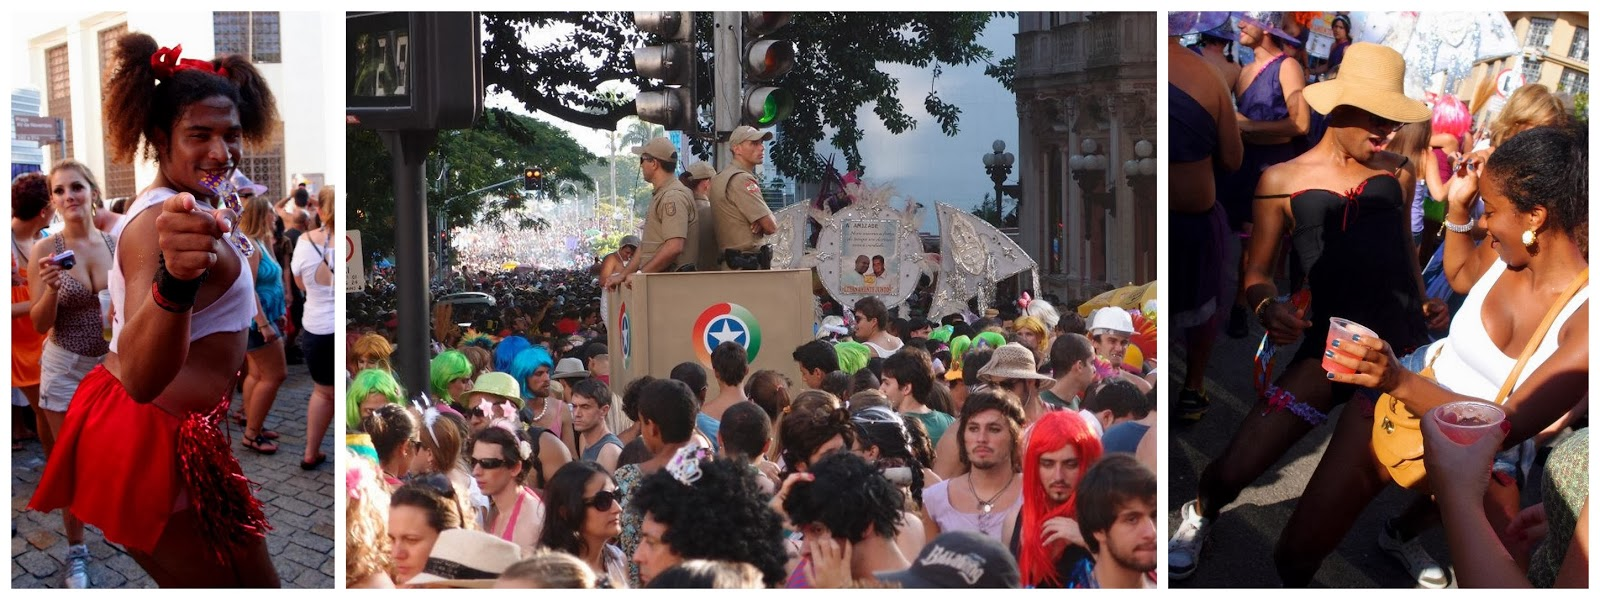 Street party in Florianopolis!